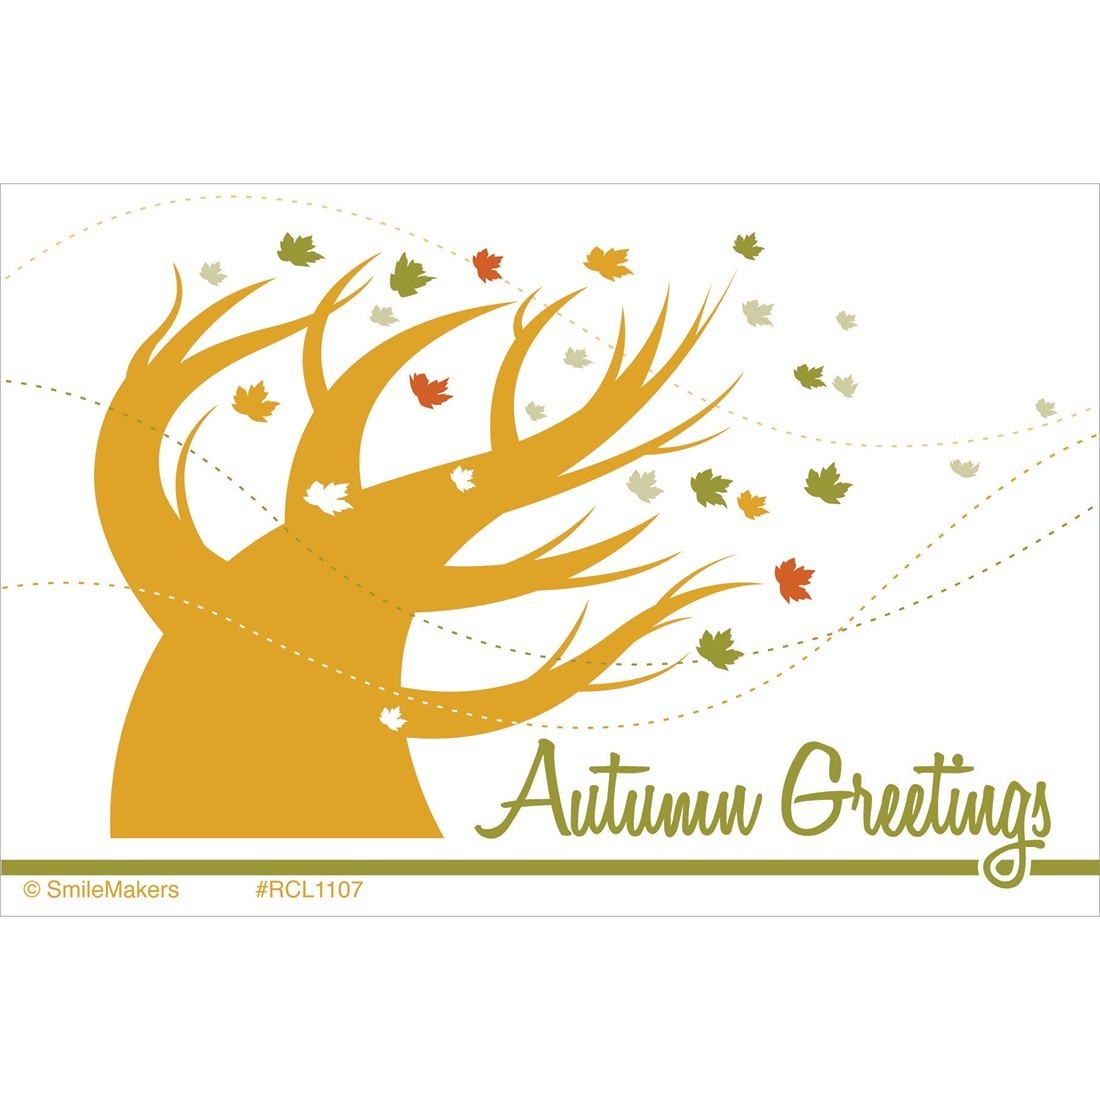 Autumn Greetings Recall Cards - Custom Recall Cards from SmileMakers